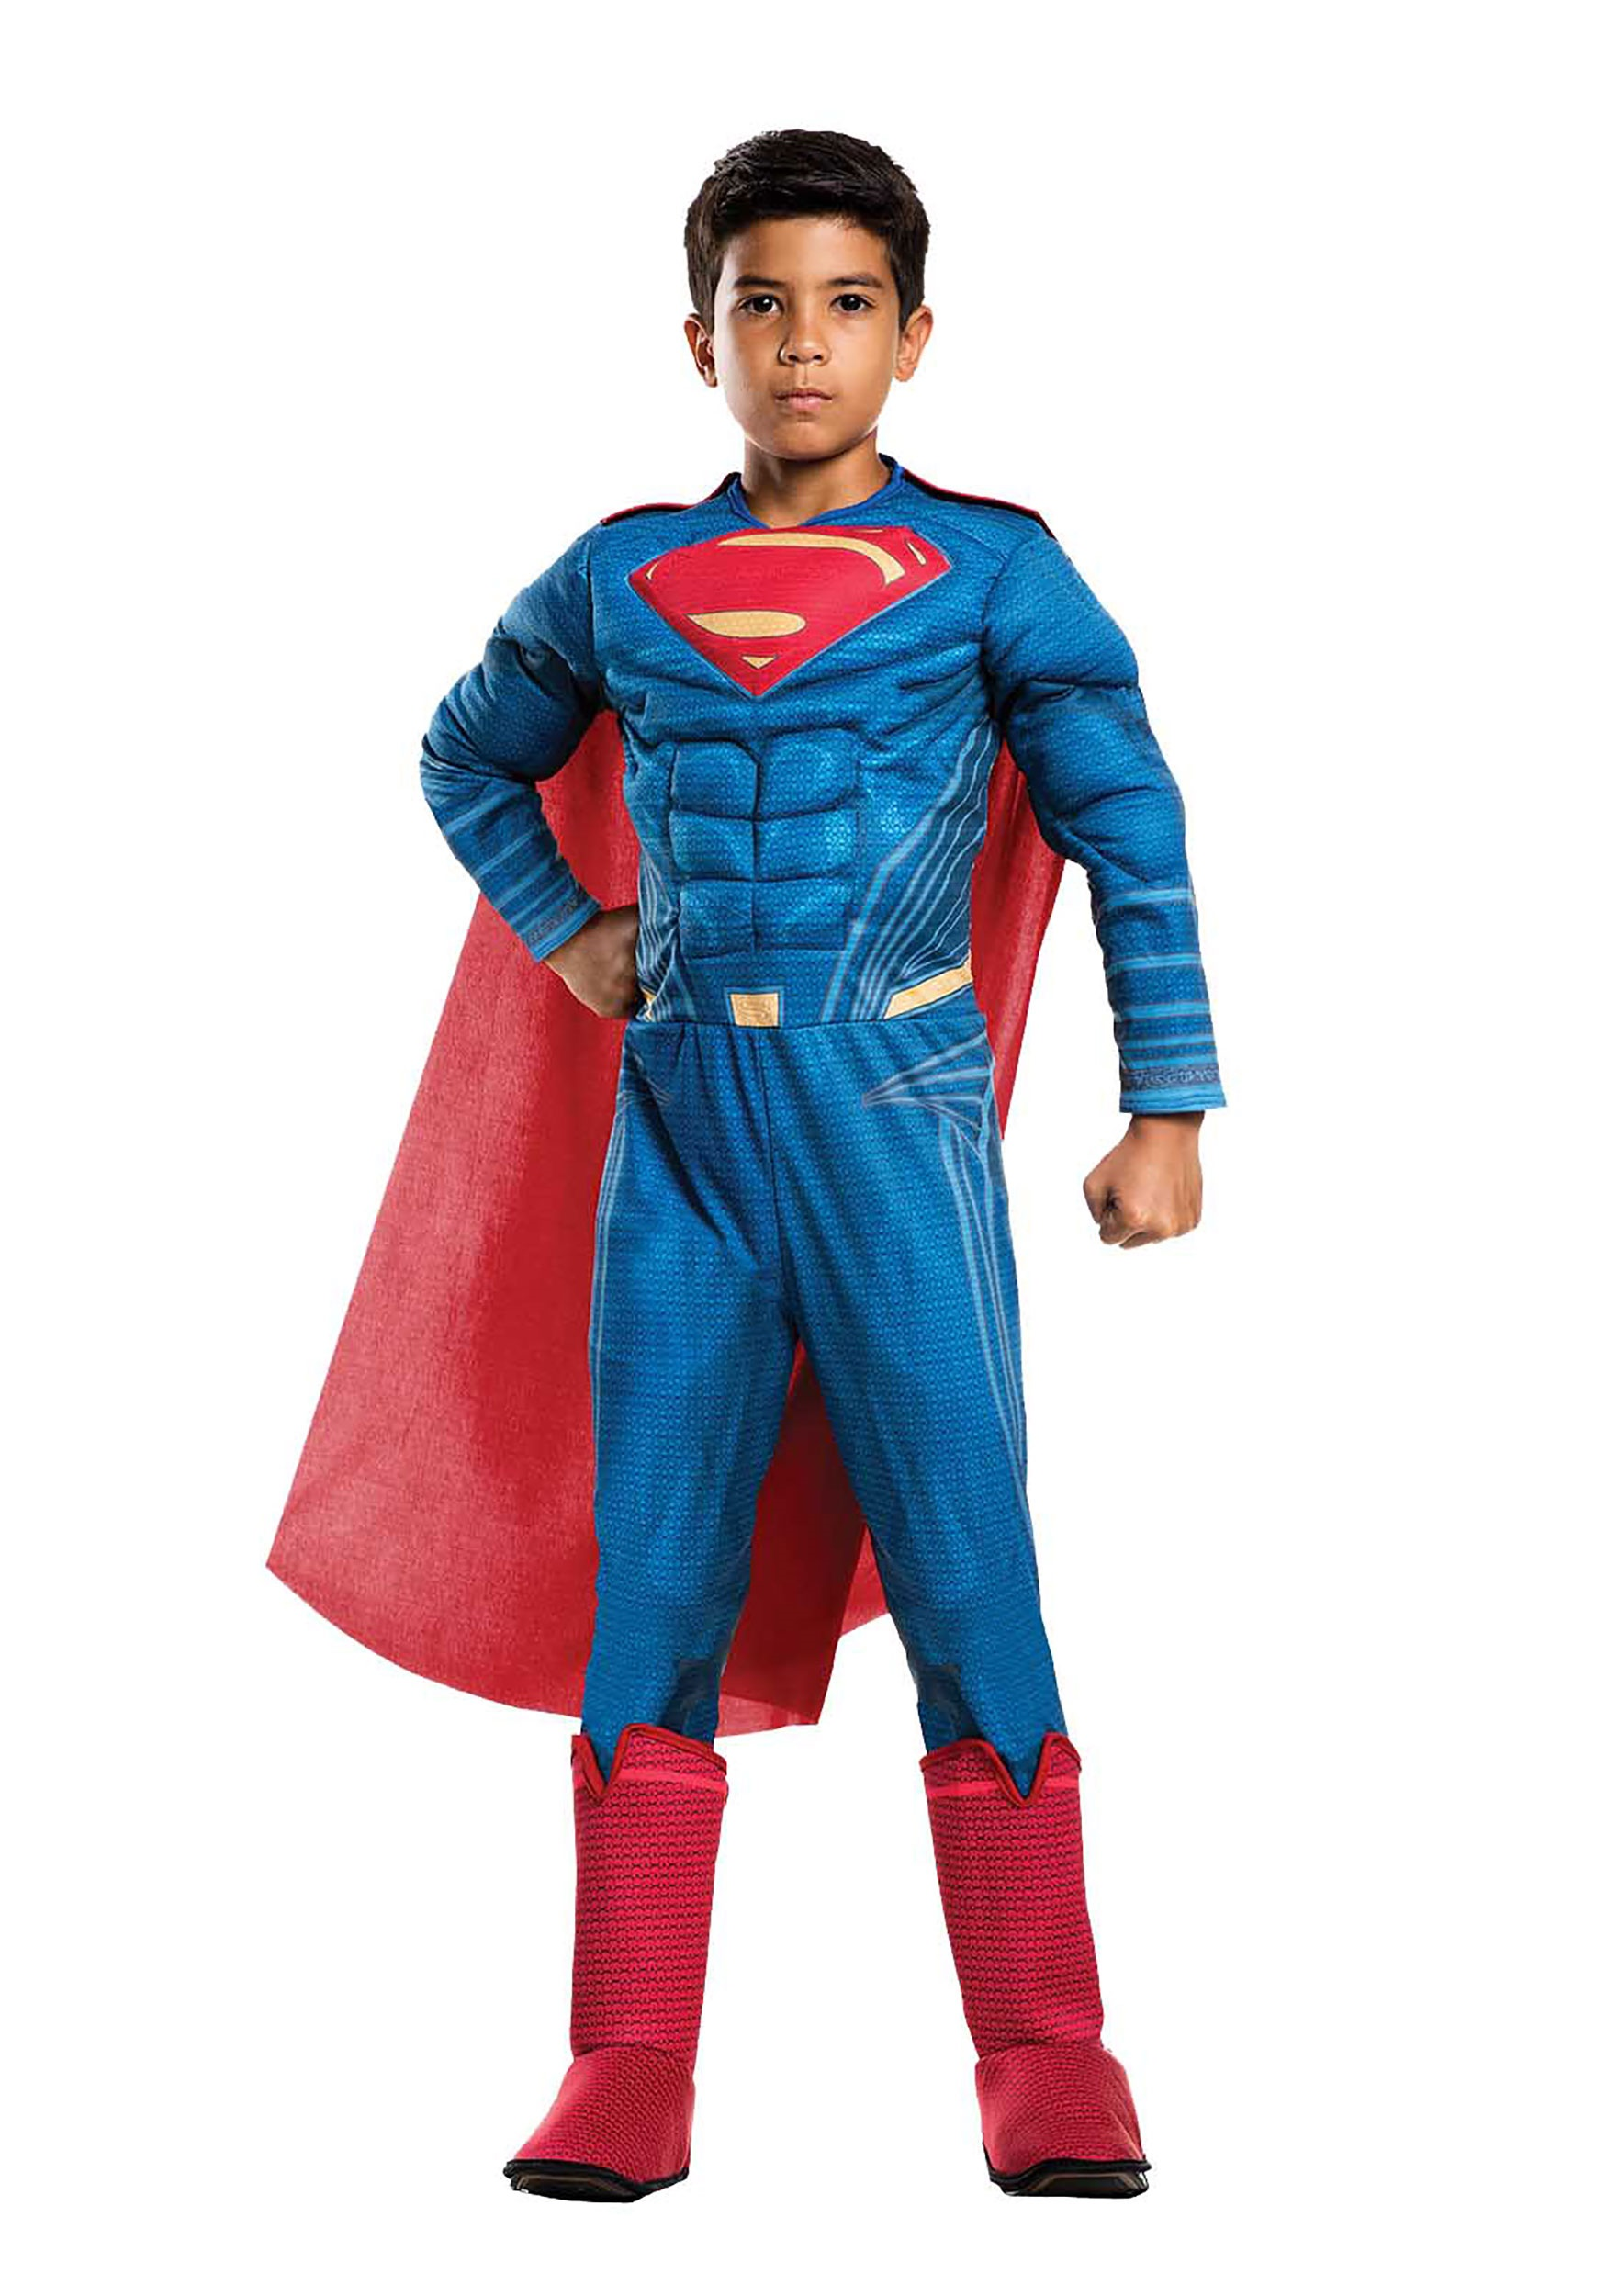 Justice League Deluxe Superman Boys Costume RU640104